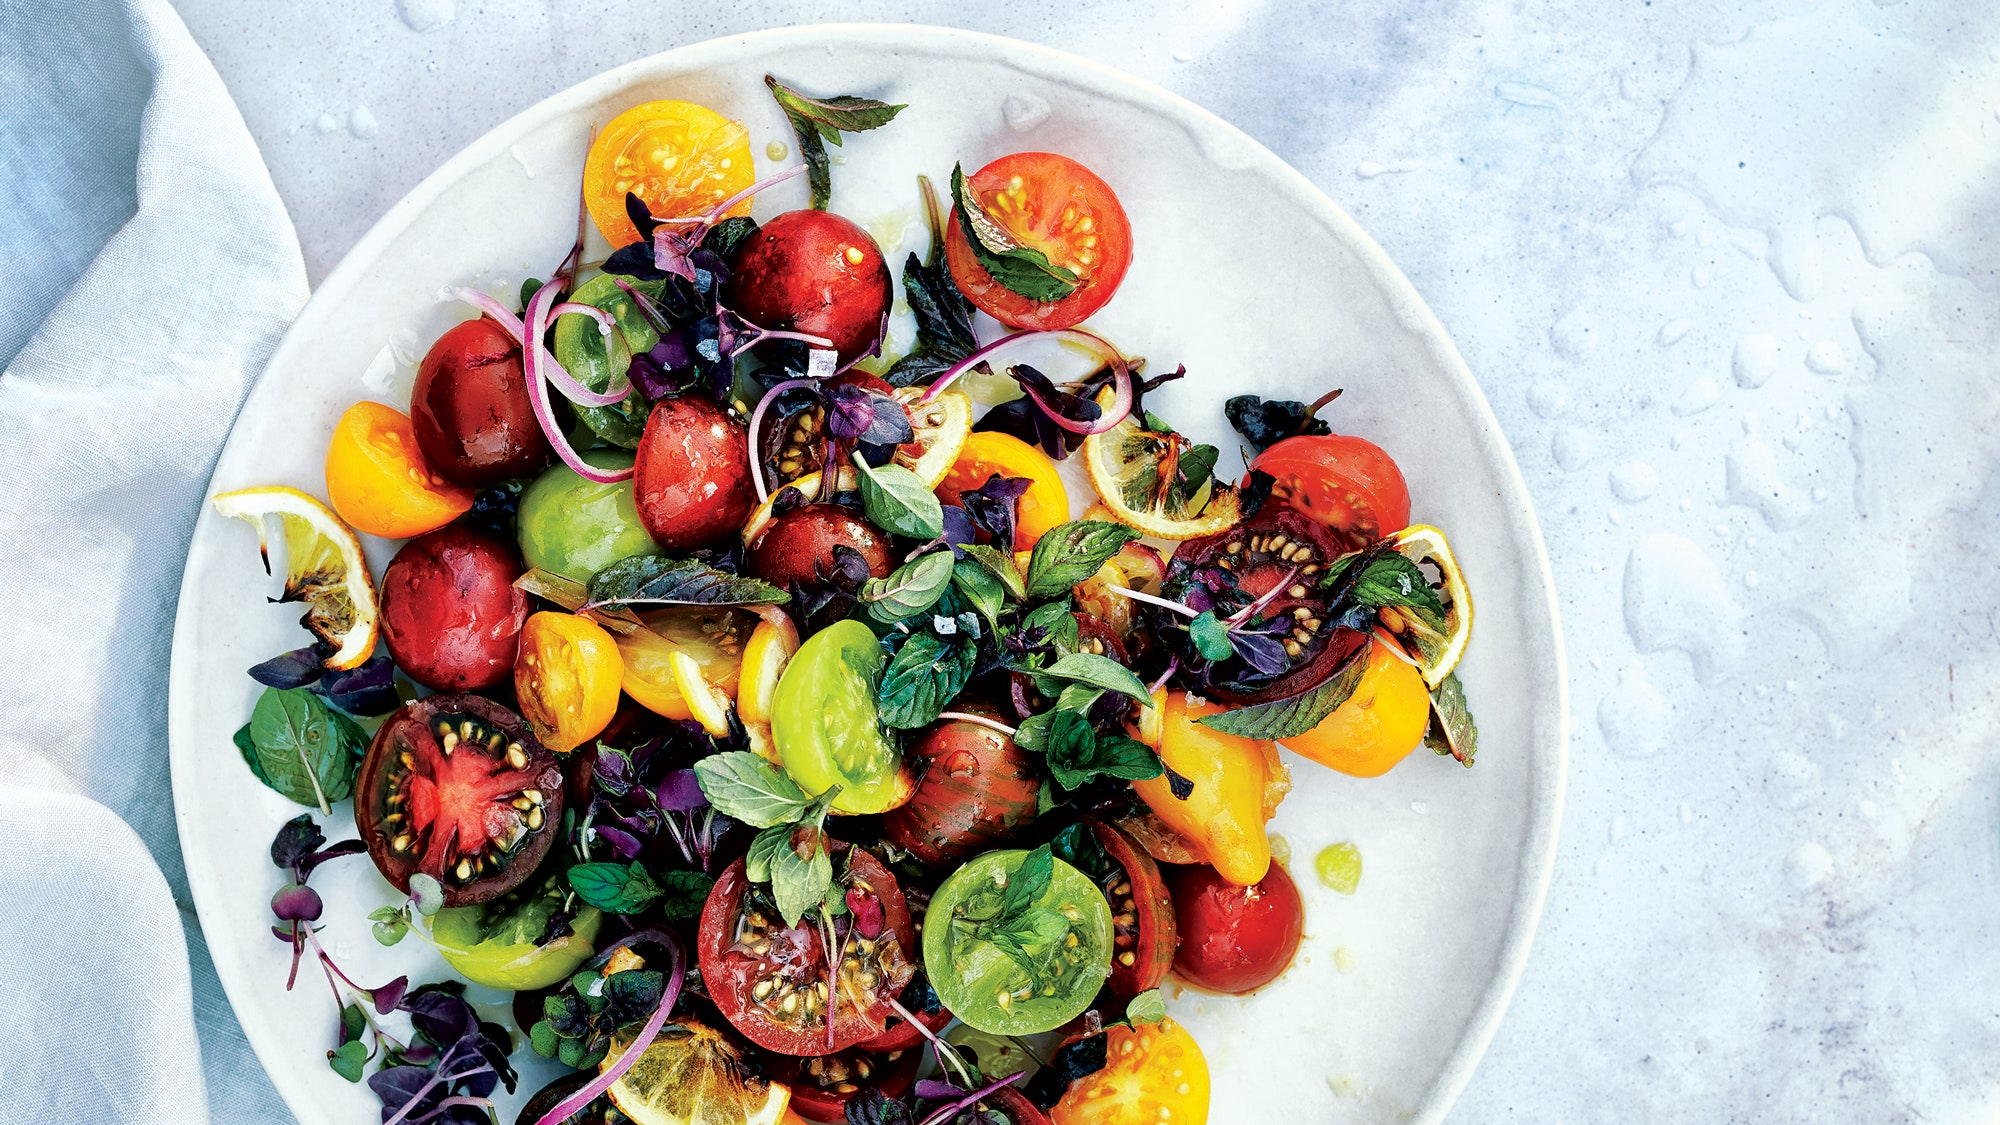 99 Best Tomato Recipes for the Flavors You've Waited All Year to Taste